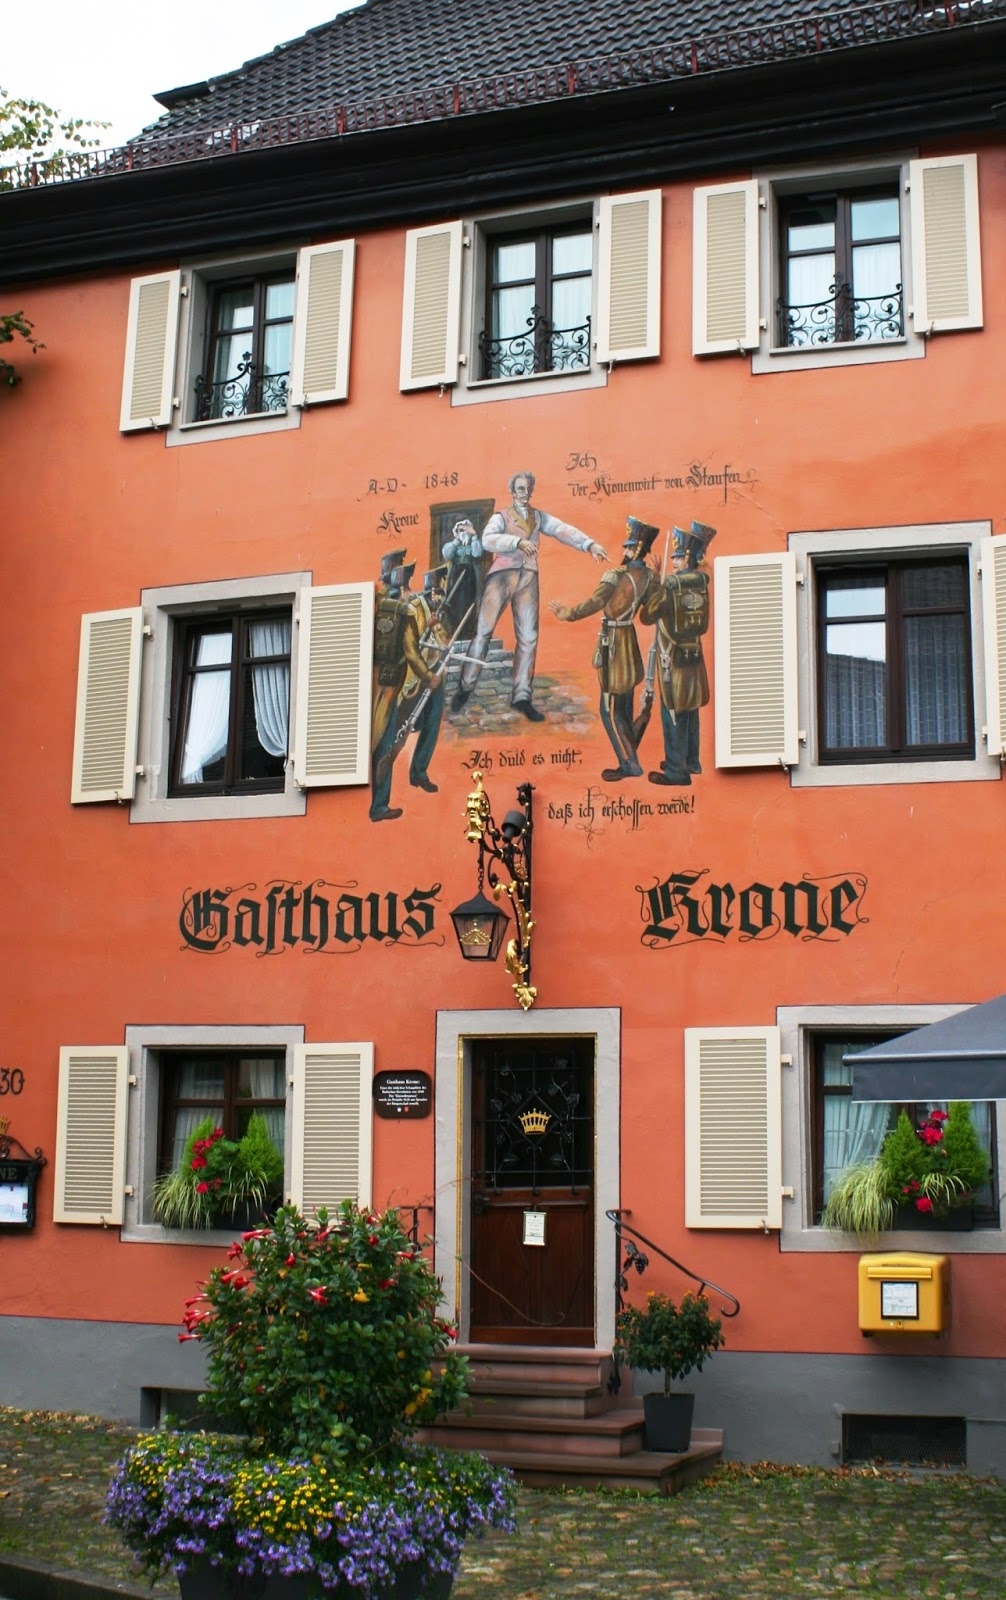 Hotel Krone Staufen Germany Lace Up and Walk